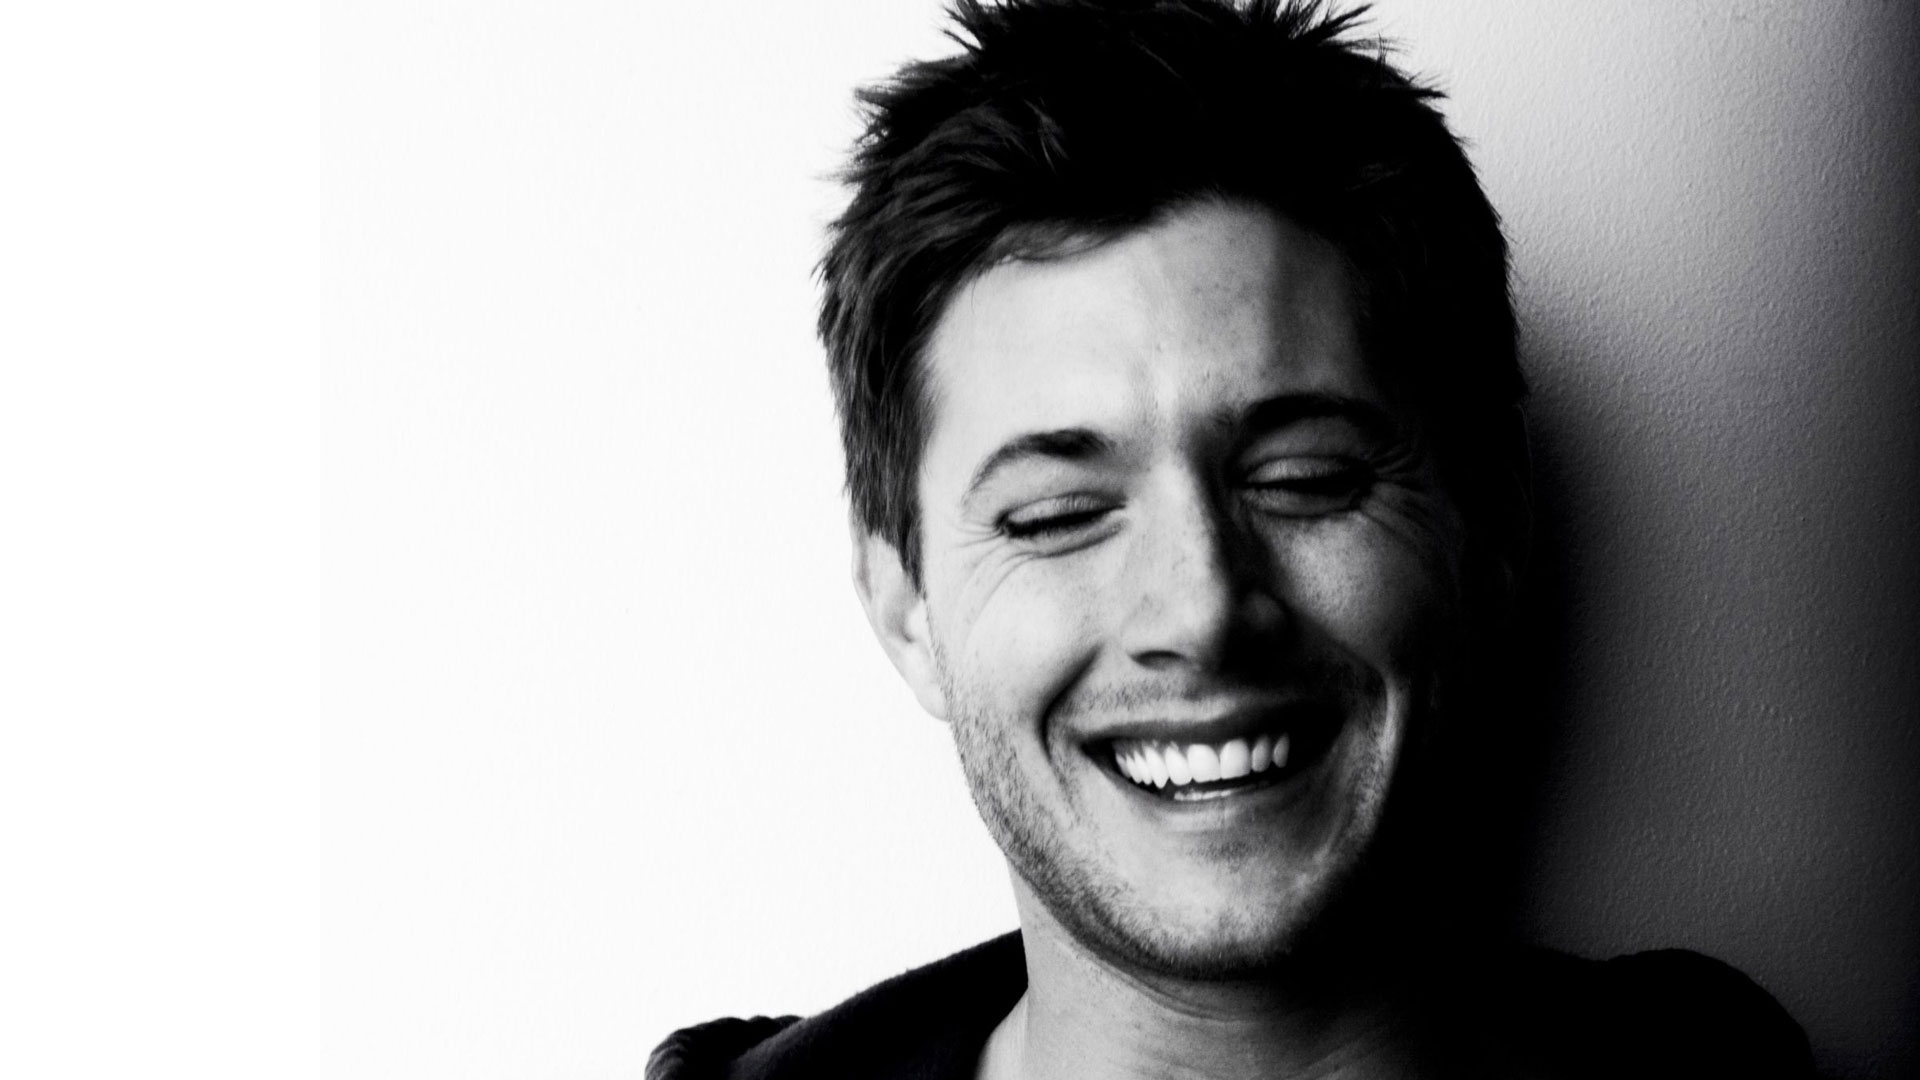 Jensen Ackles Full HD Wallpaper And Background Image